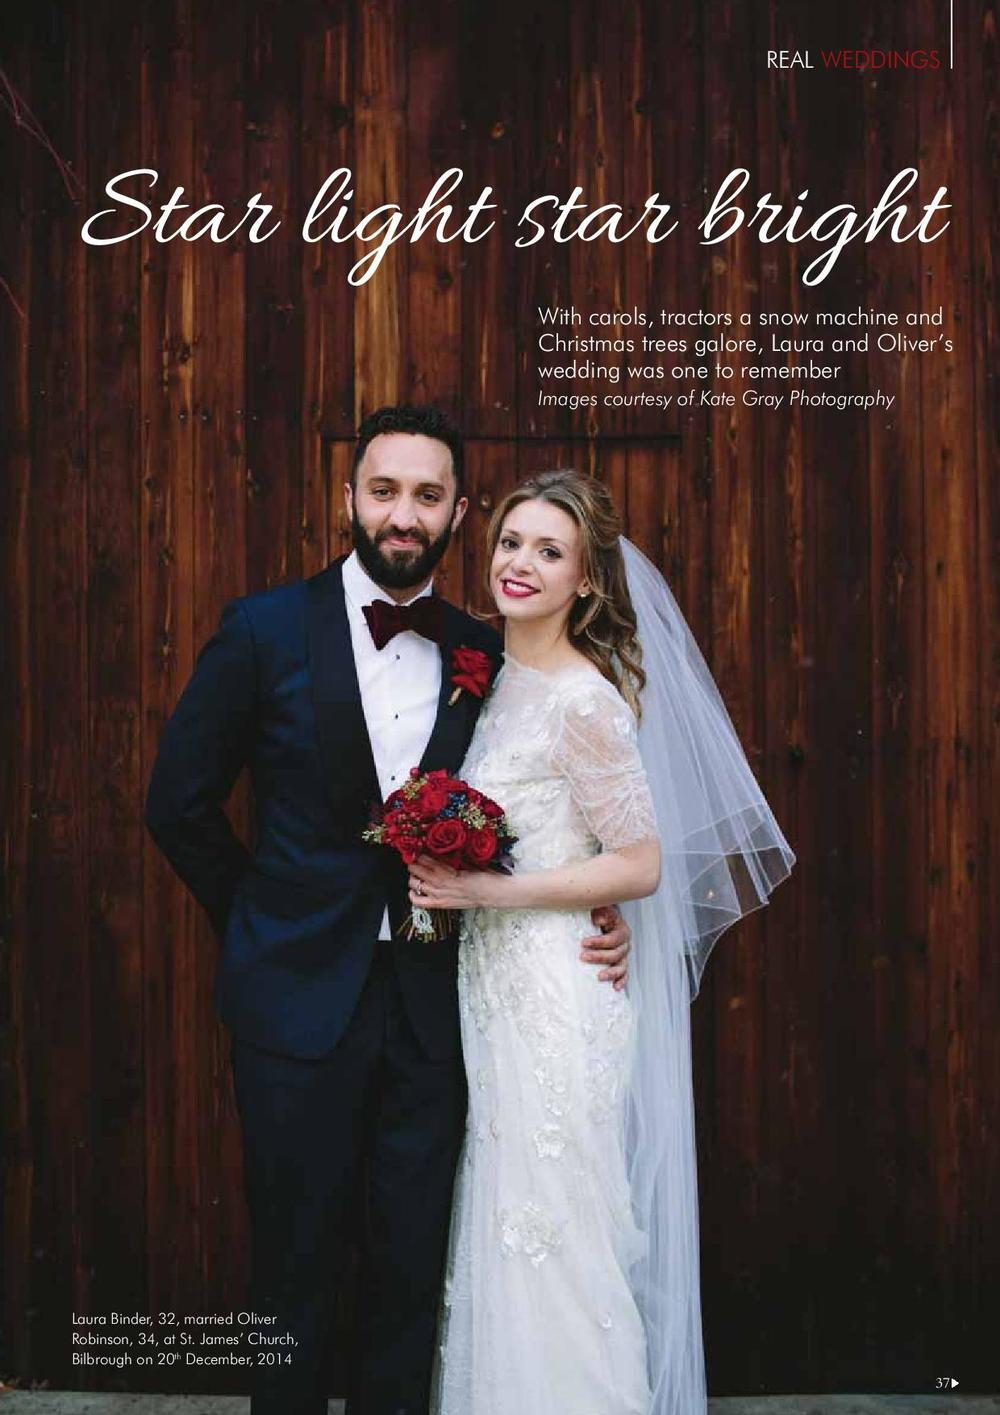 The Normans Weddings featured in Your Yorkshire Wedding magazine